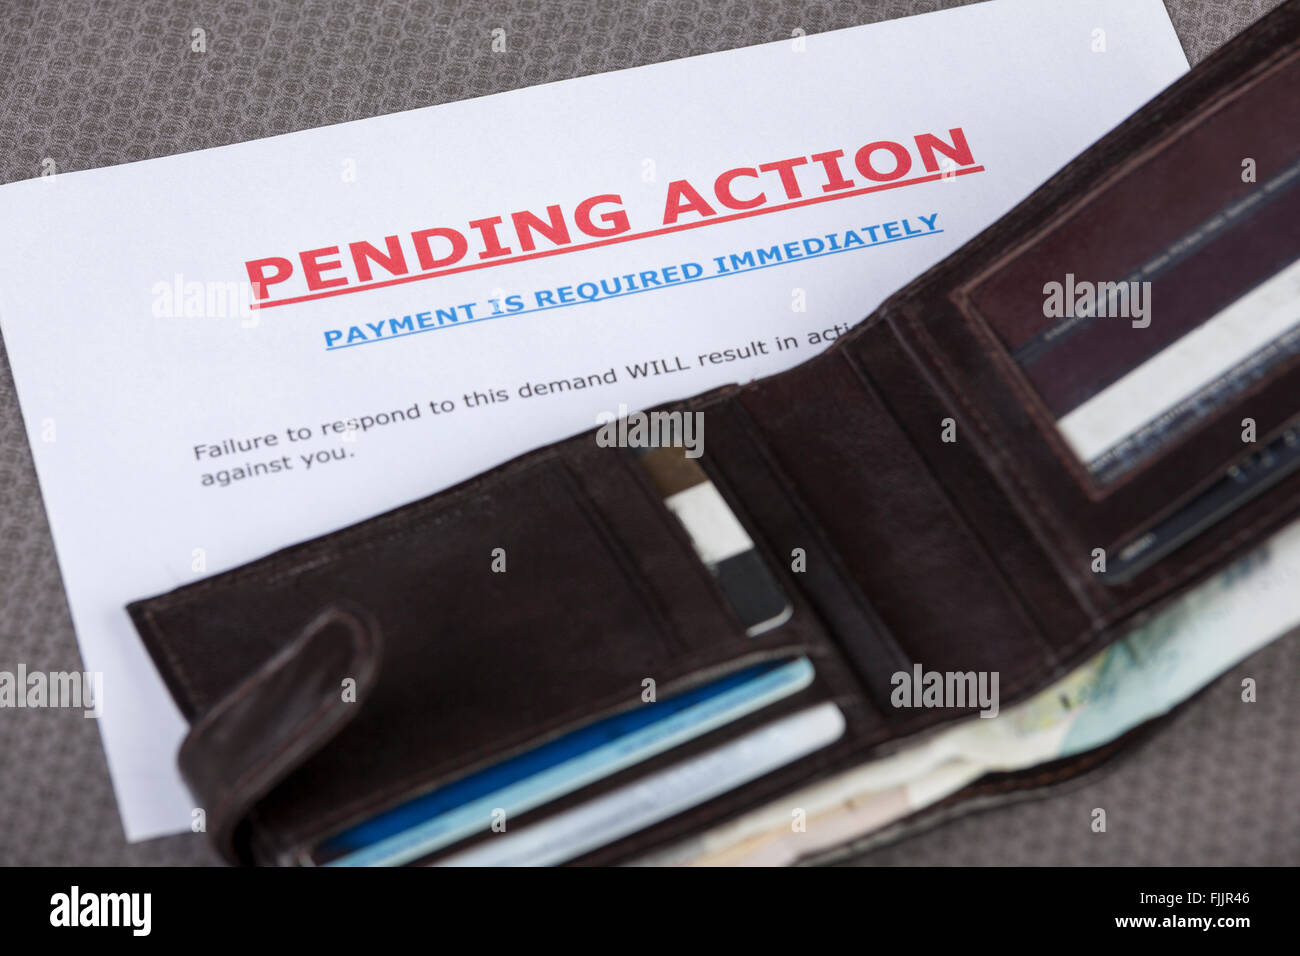 Open wallet with credit cards and cash laying across a final demand letter - Stock Image